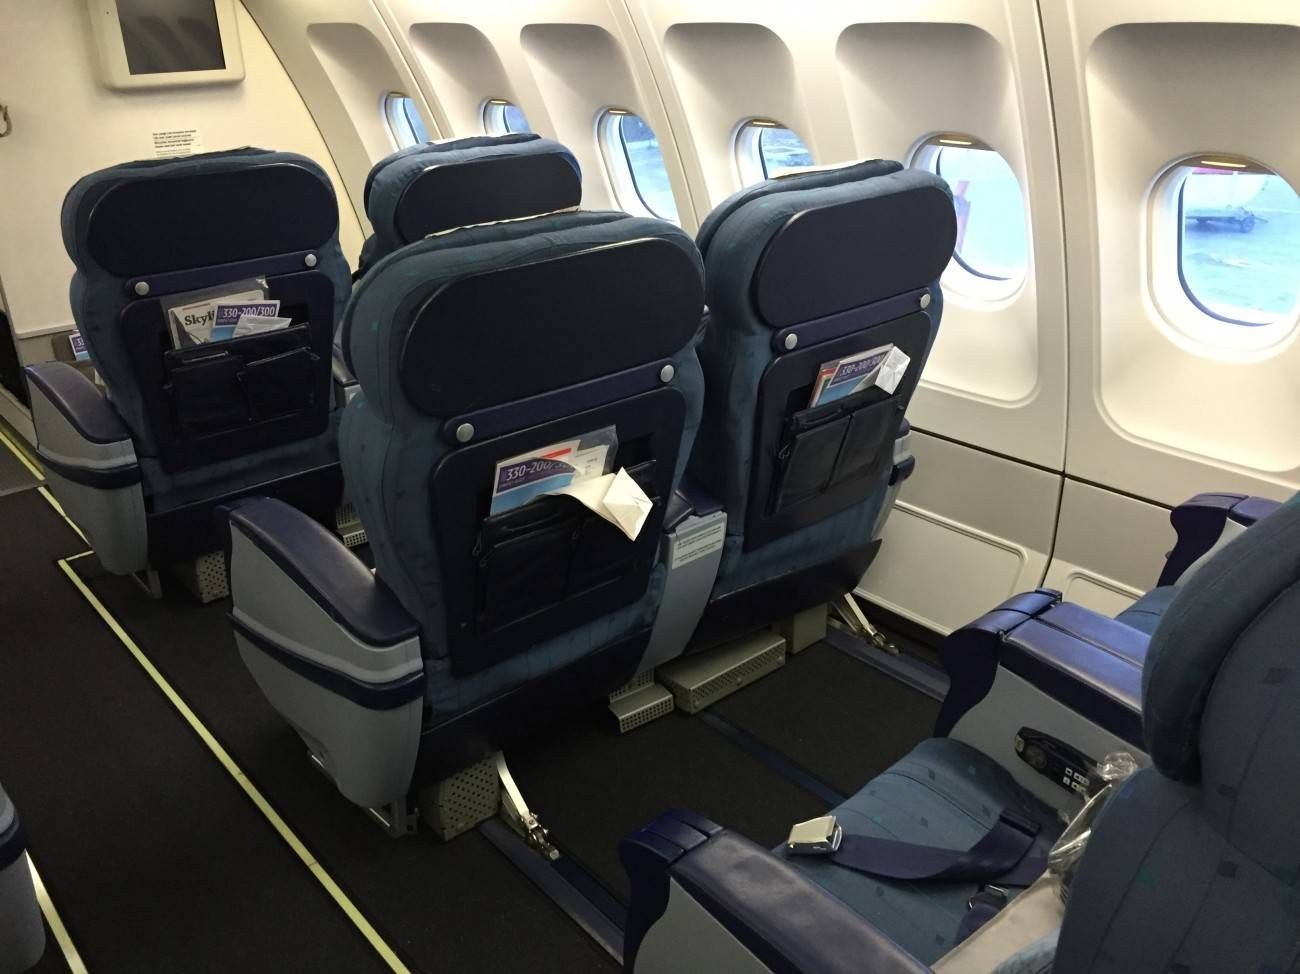 Turkish Airlines A330 Business Class